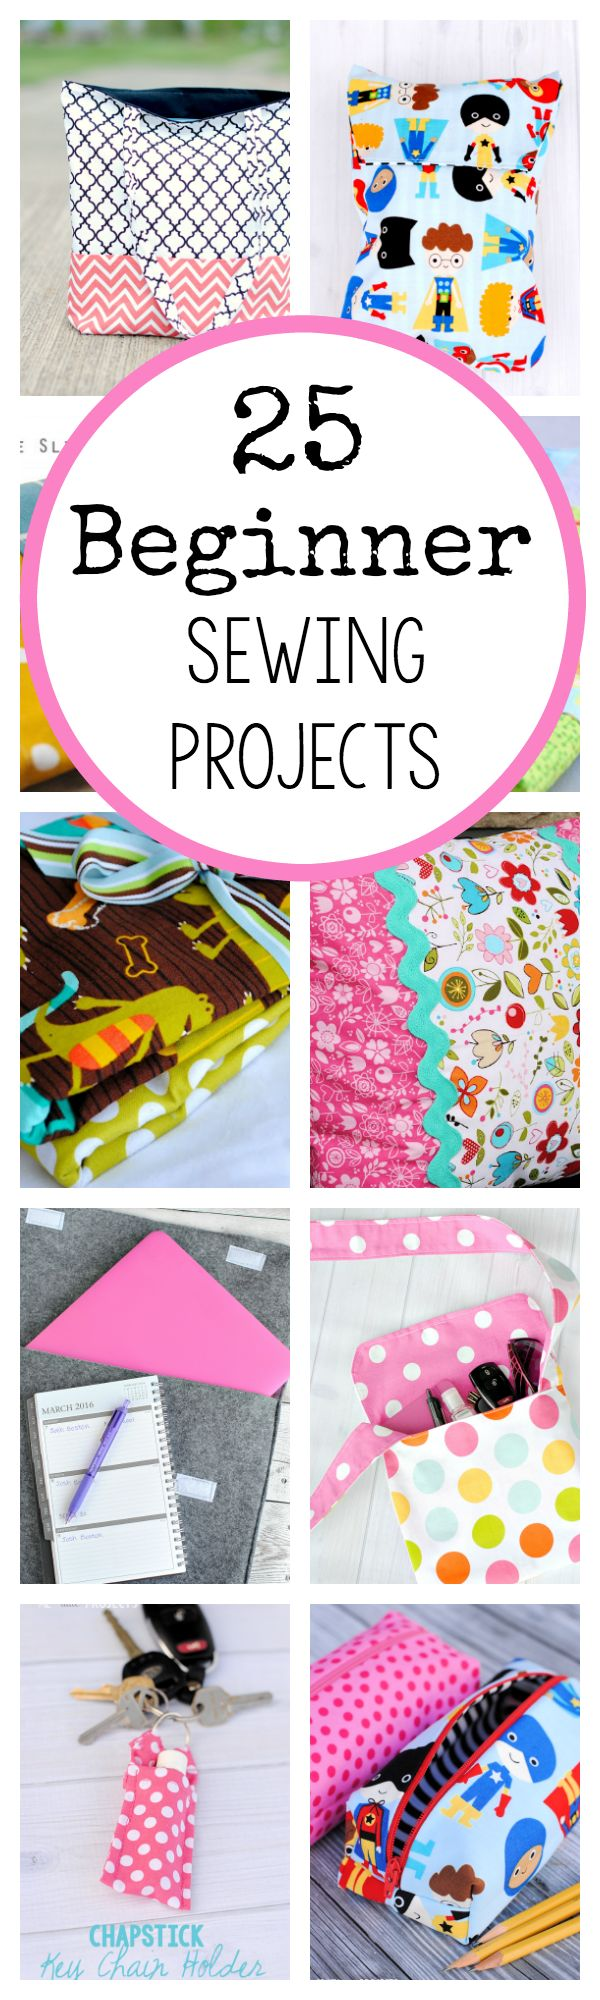 Sewing Projects for Beginners